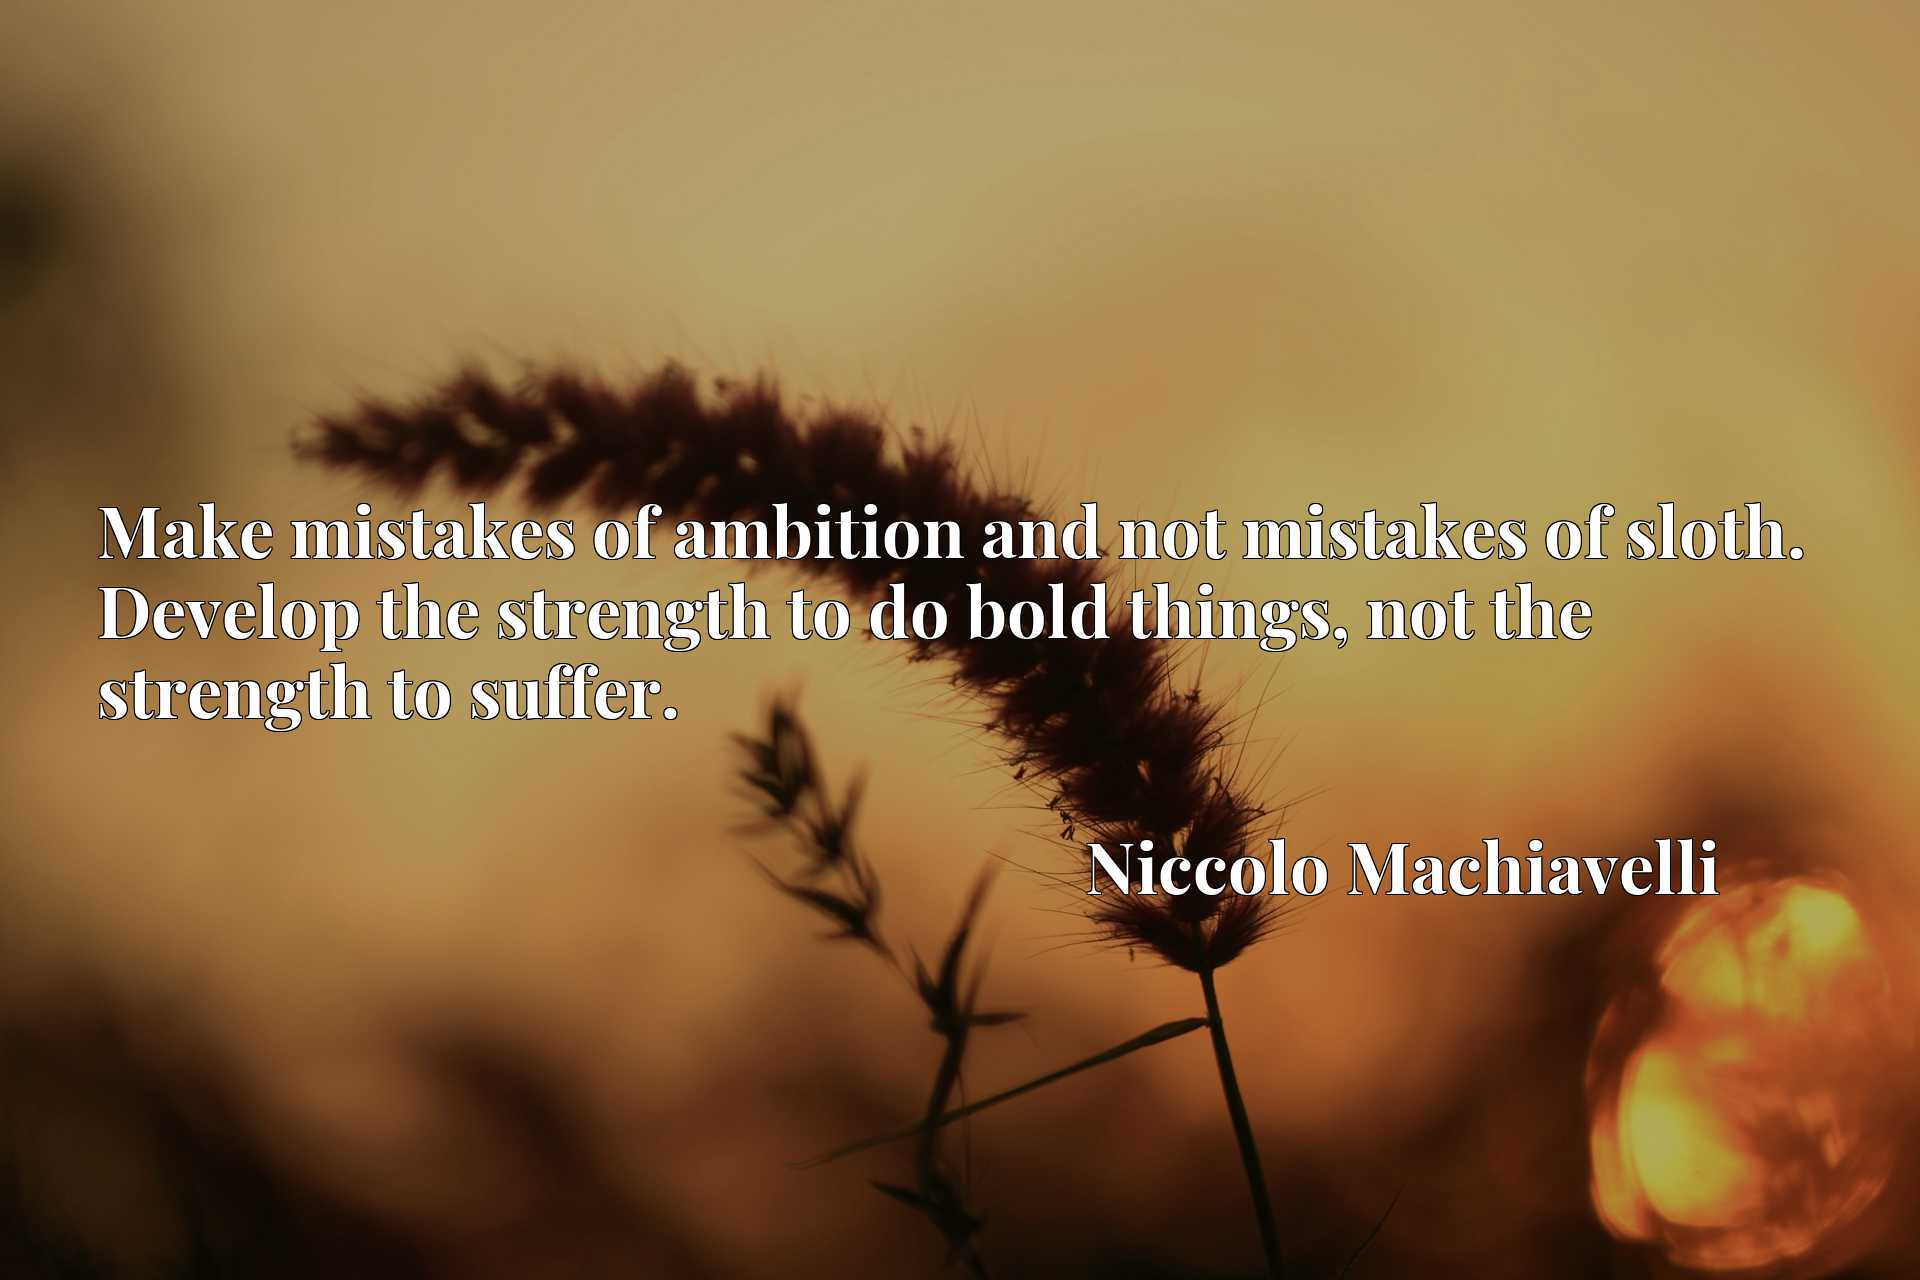 Make mistakes of ambition and not mistakes of sloth. Develop the strength to do bold things, not the strength to suffer.